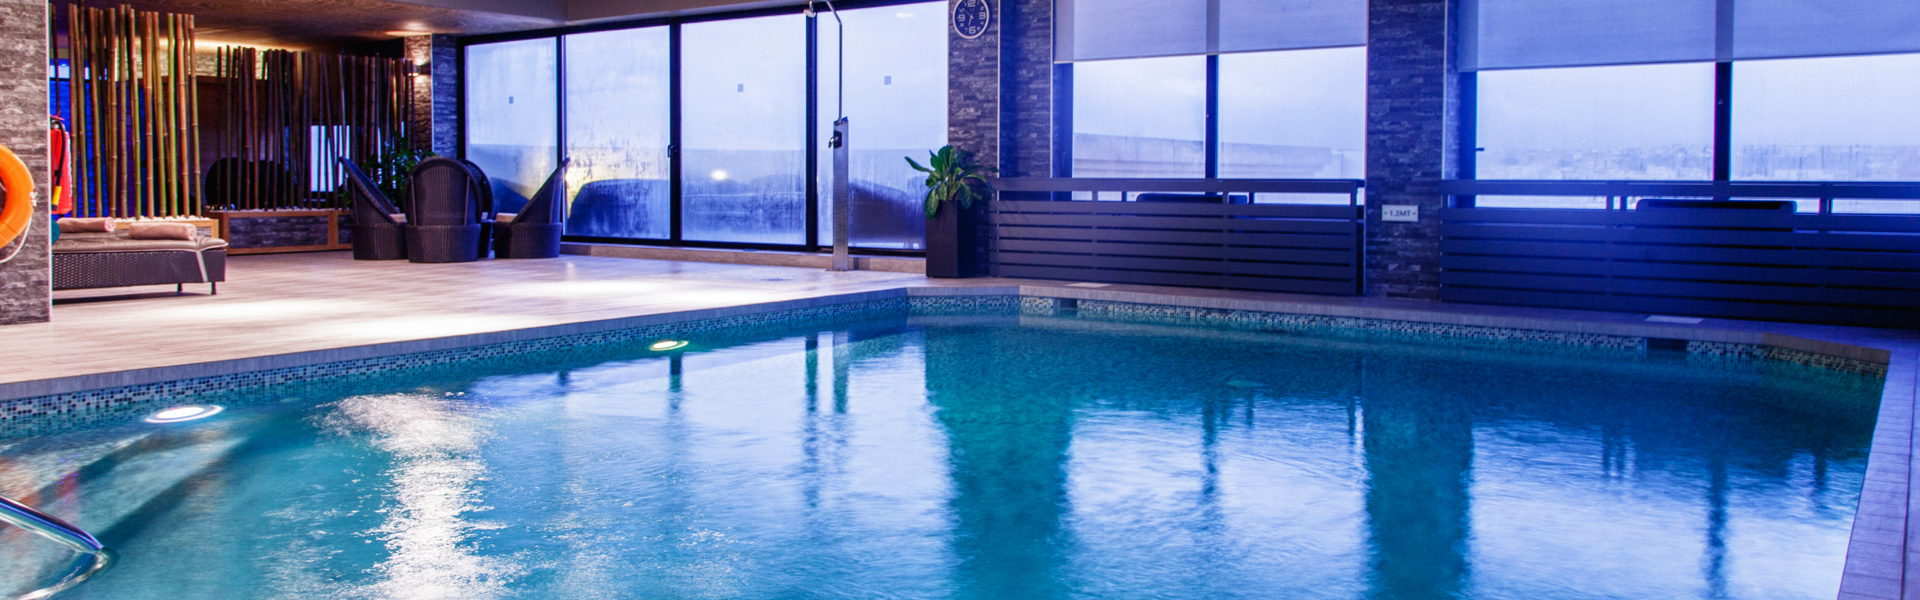 AX The Victoria Hotel - Indoor Pool